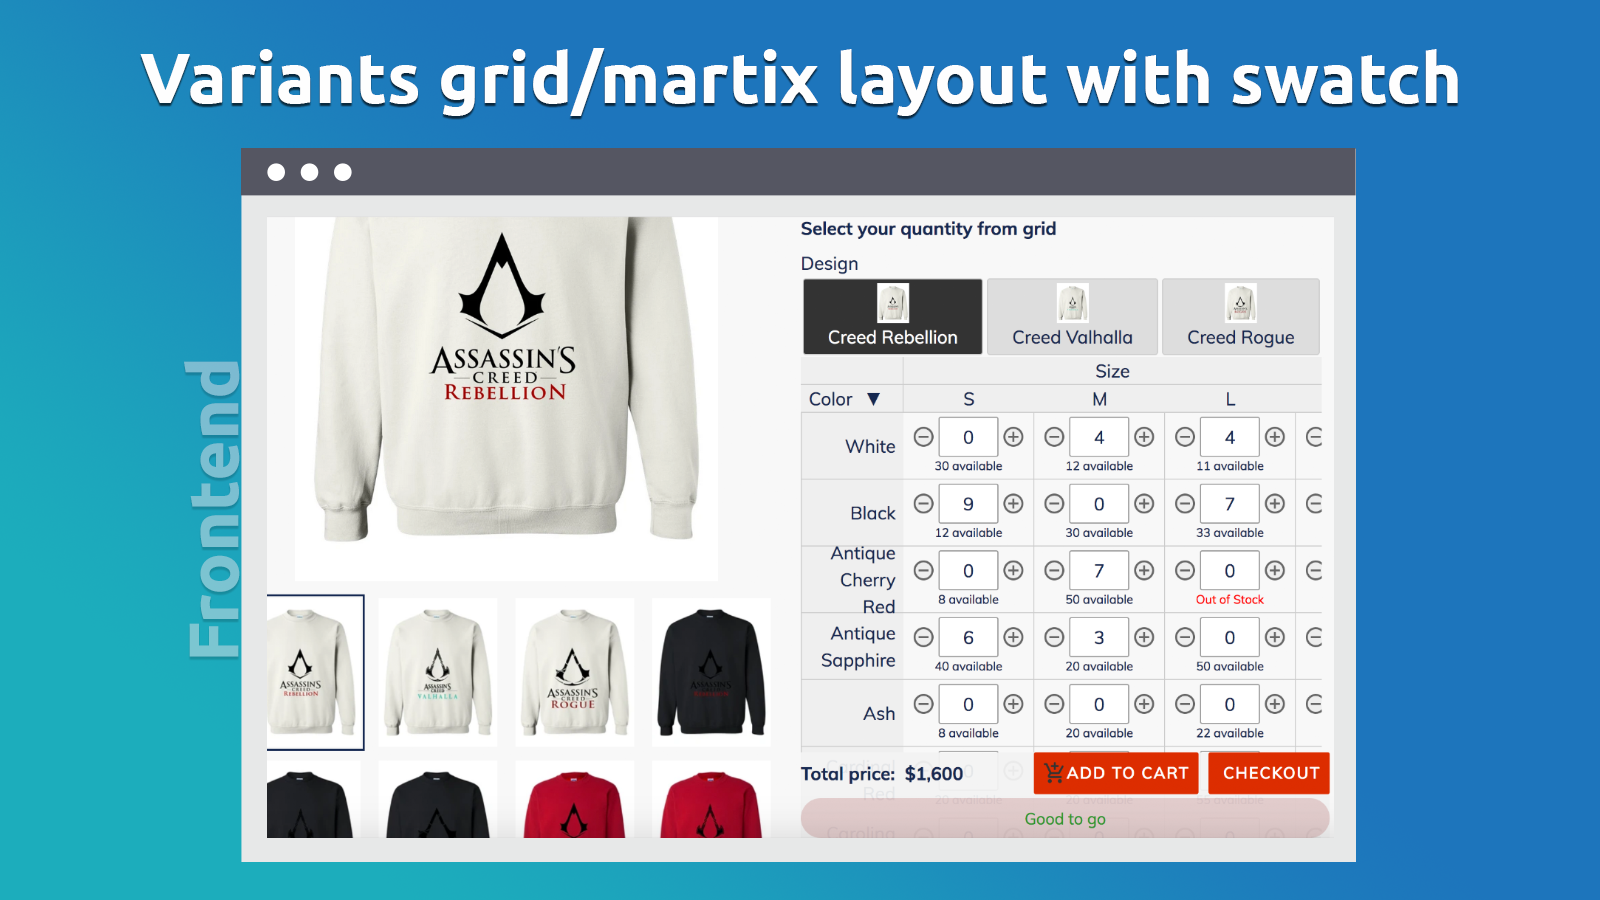 Variants grid/matrix layout with swatch